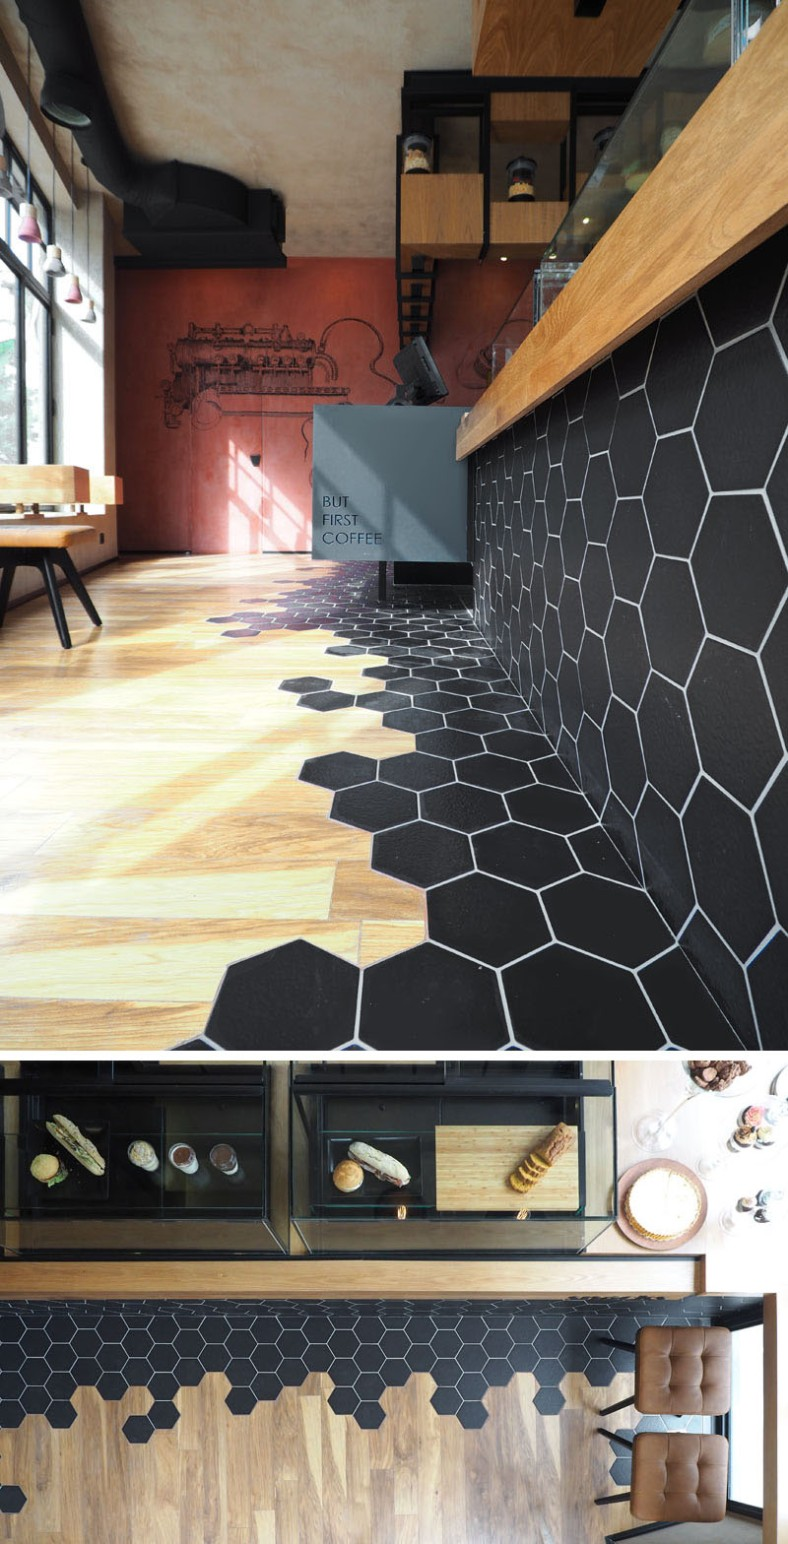 hexagon-tile-wood-flooring-111216-1101-011